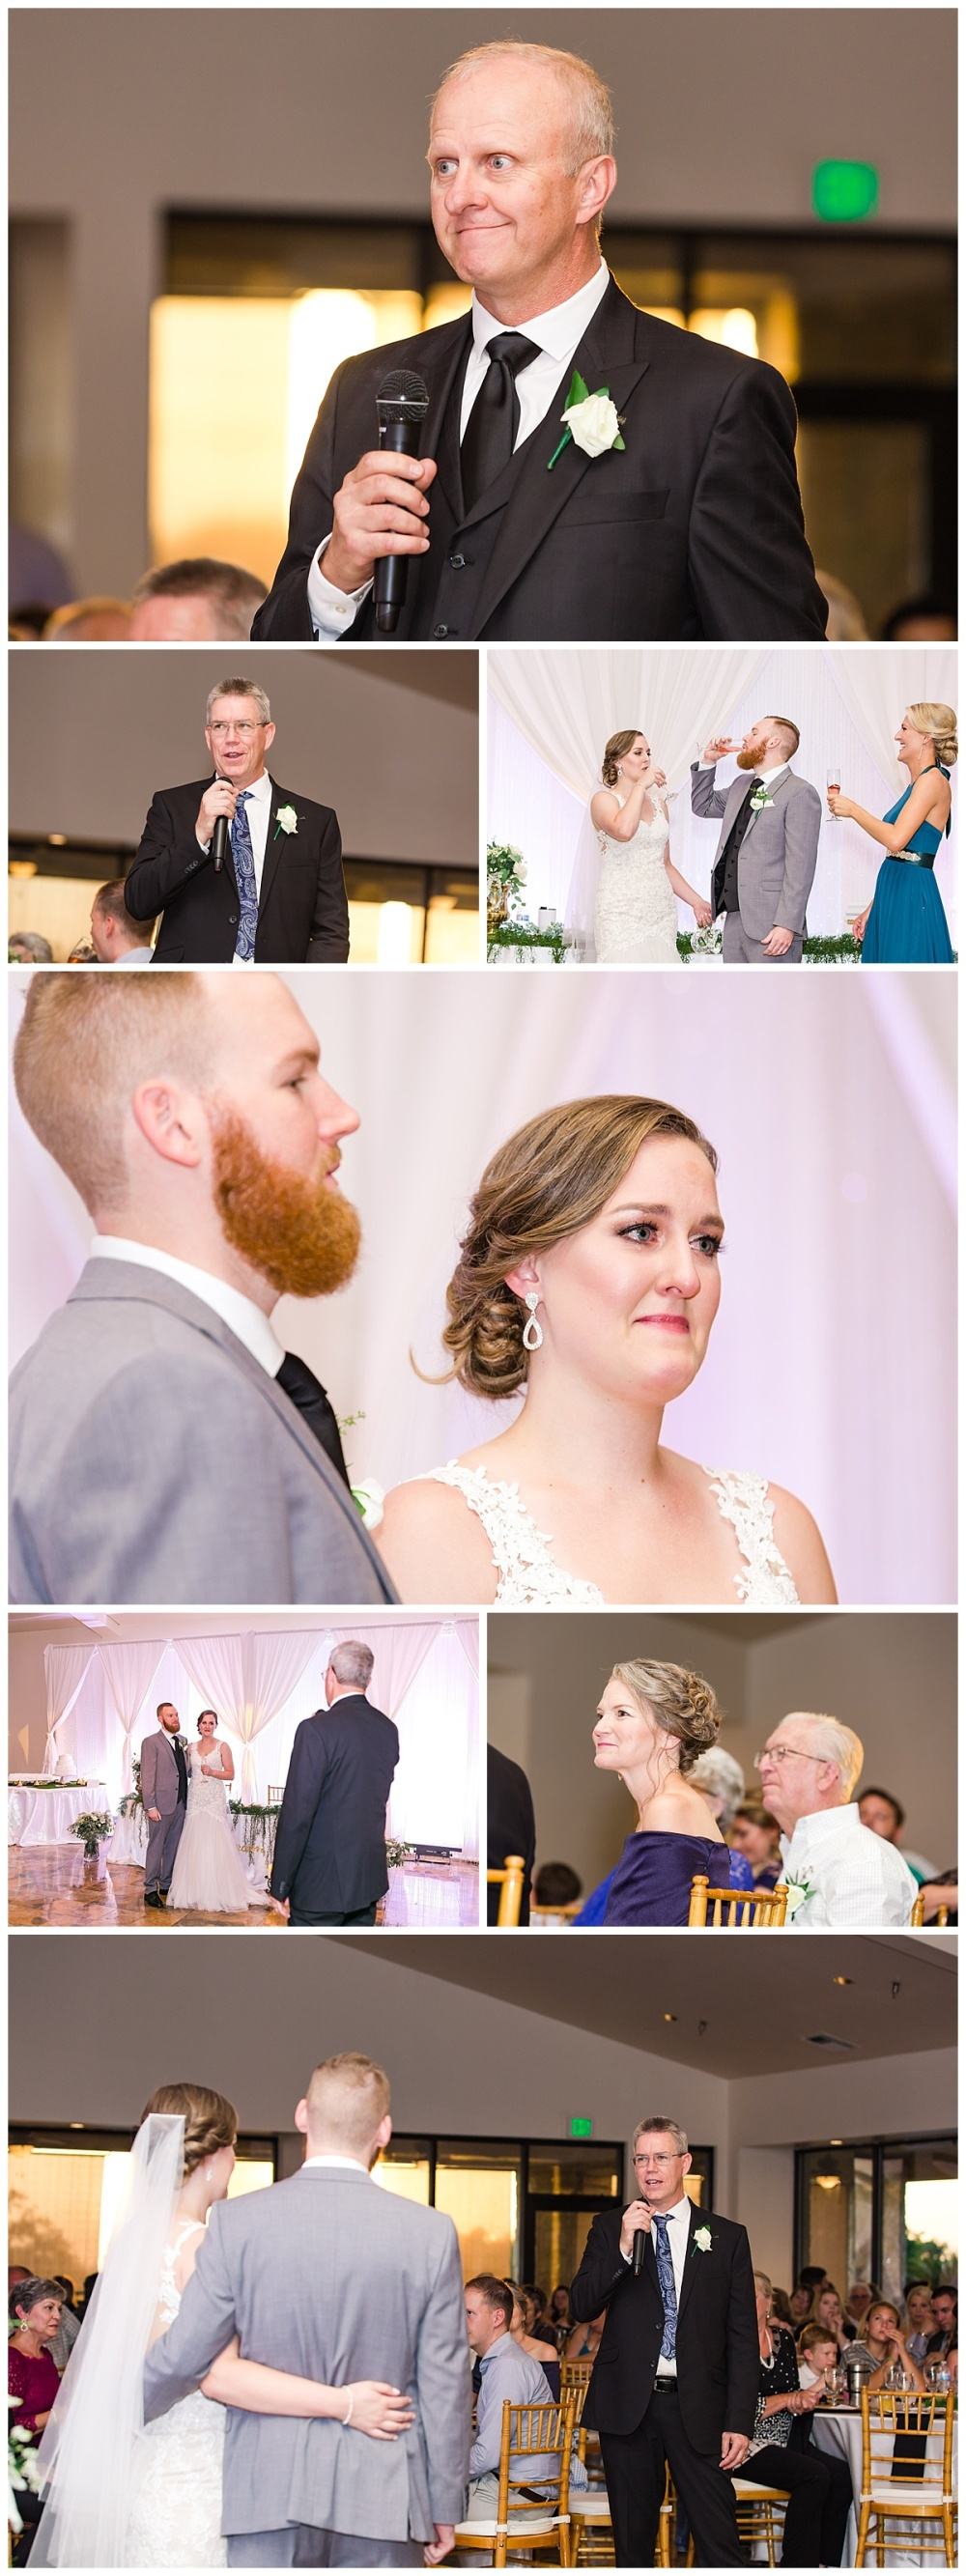 Carly-Barton-Photography-Wedding-Photos-Granberry-Hills-Event-Facility-Ryan-Chelsea-San-Antonio-Texas_0076.jpg